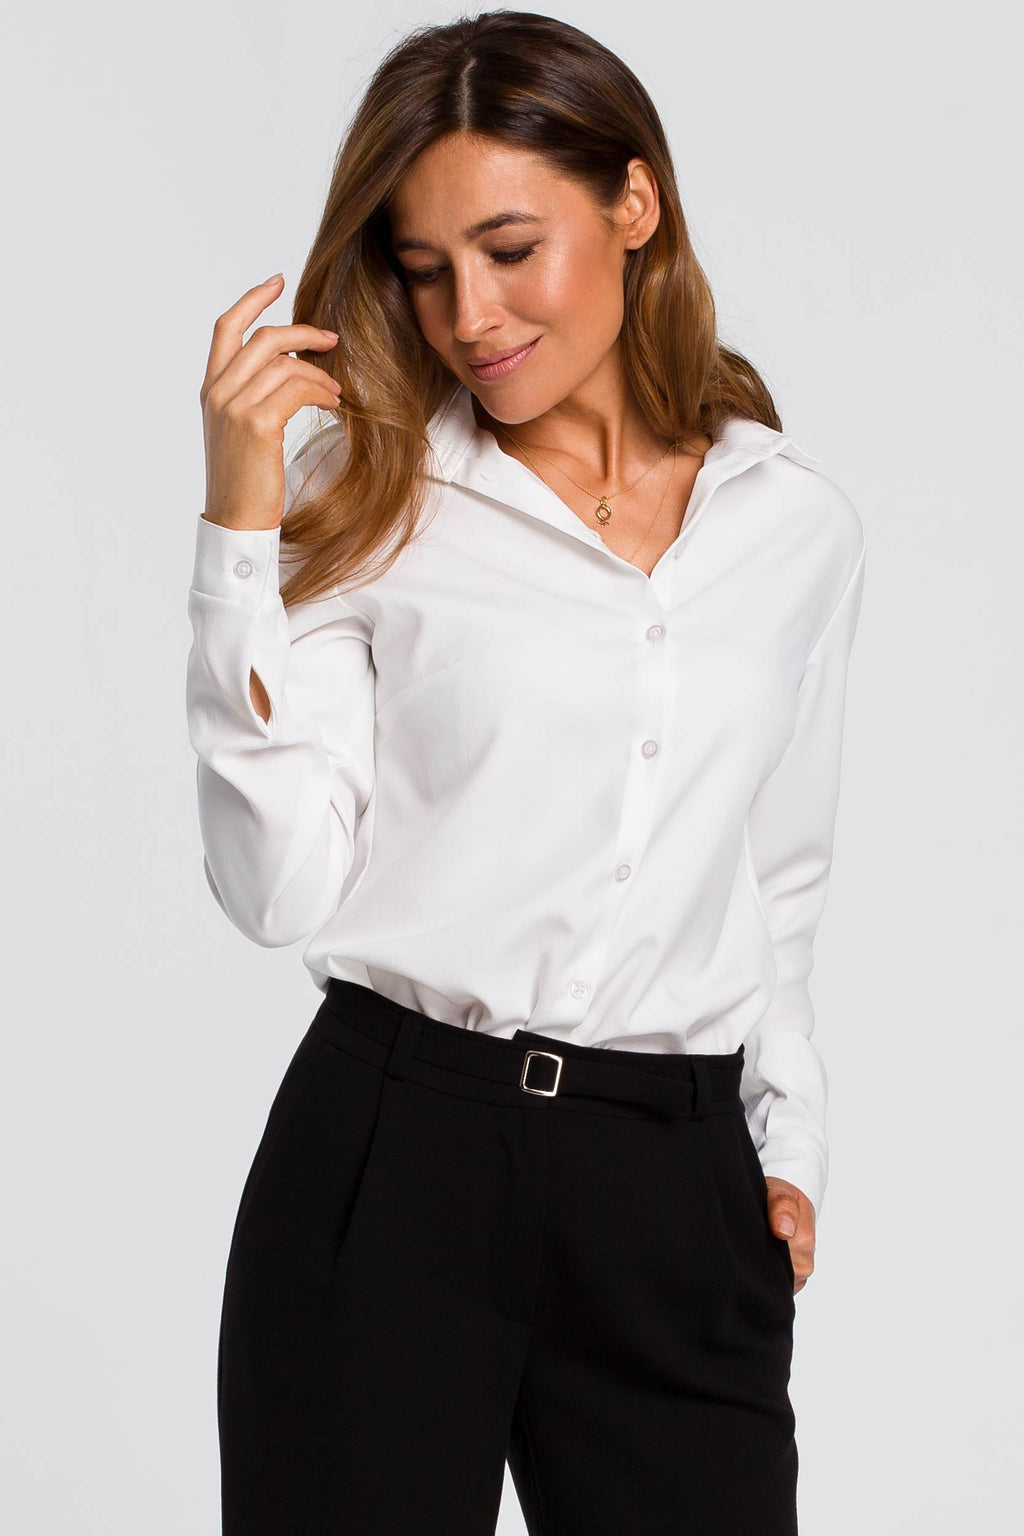 White Long Sleeve Linen Blend Shirt With Shoulder Epaulets - So Chic Boutique